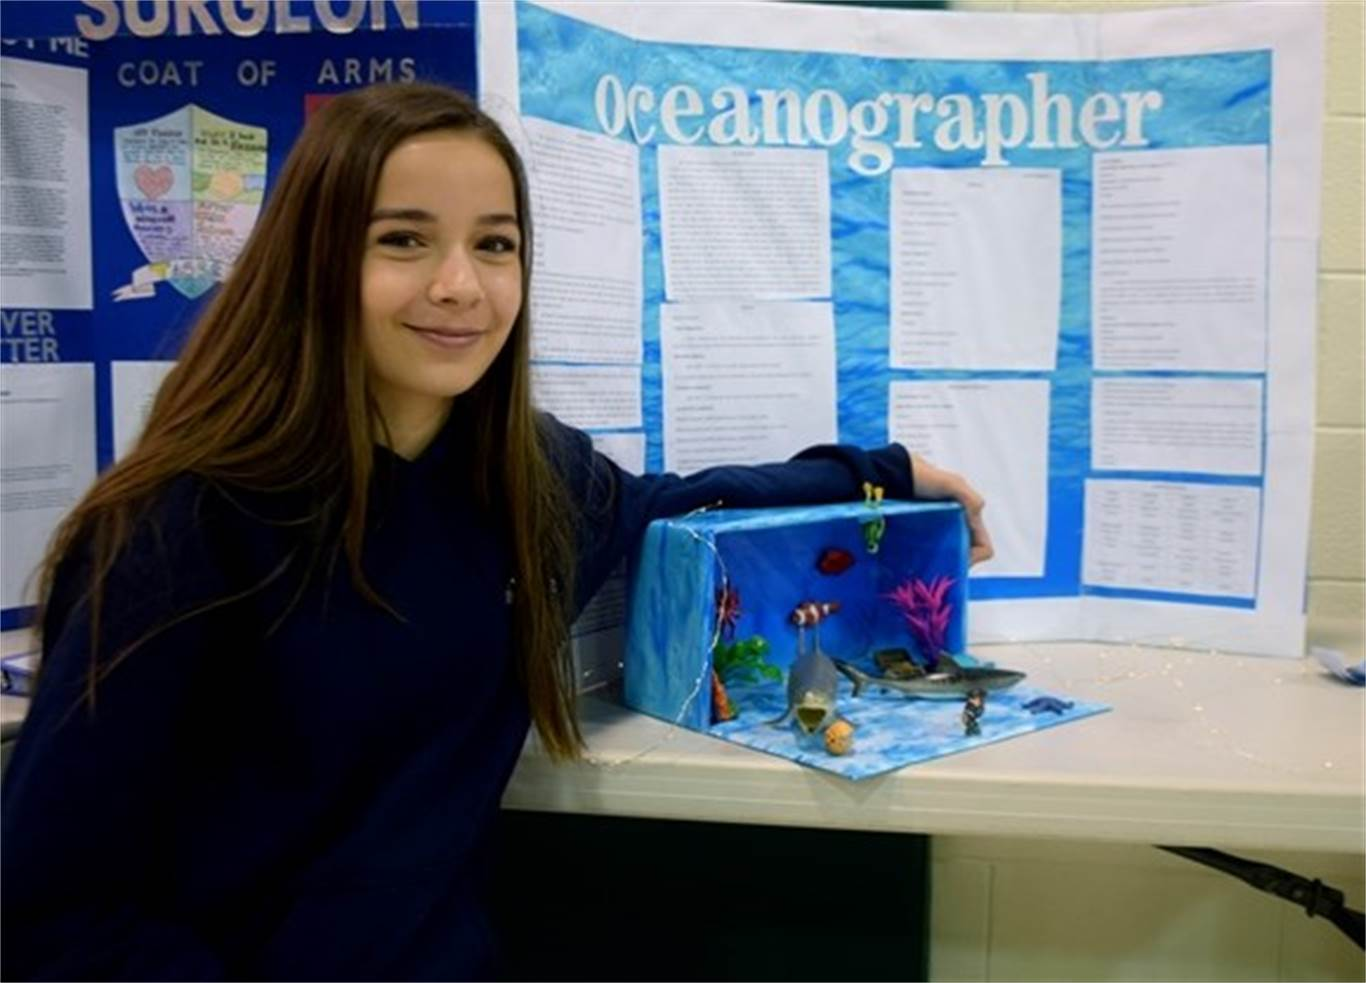 Grade 8 student Maria Andrejciw displays her career portfolio on oceanography during St. Luke Catholic Elementary School's fourth career day on May 3. Photo by Laura Lennie, Stoney Creek News.